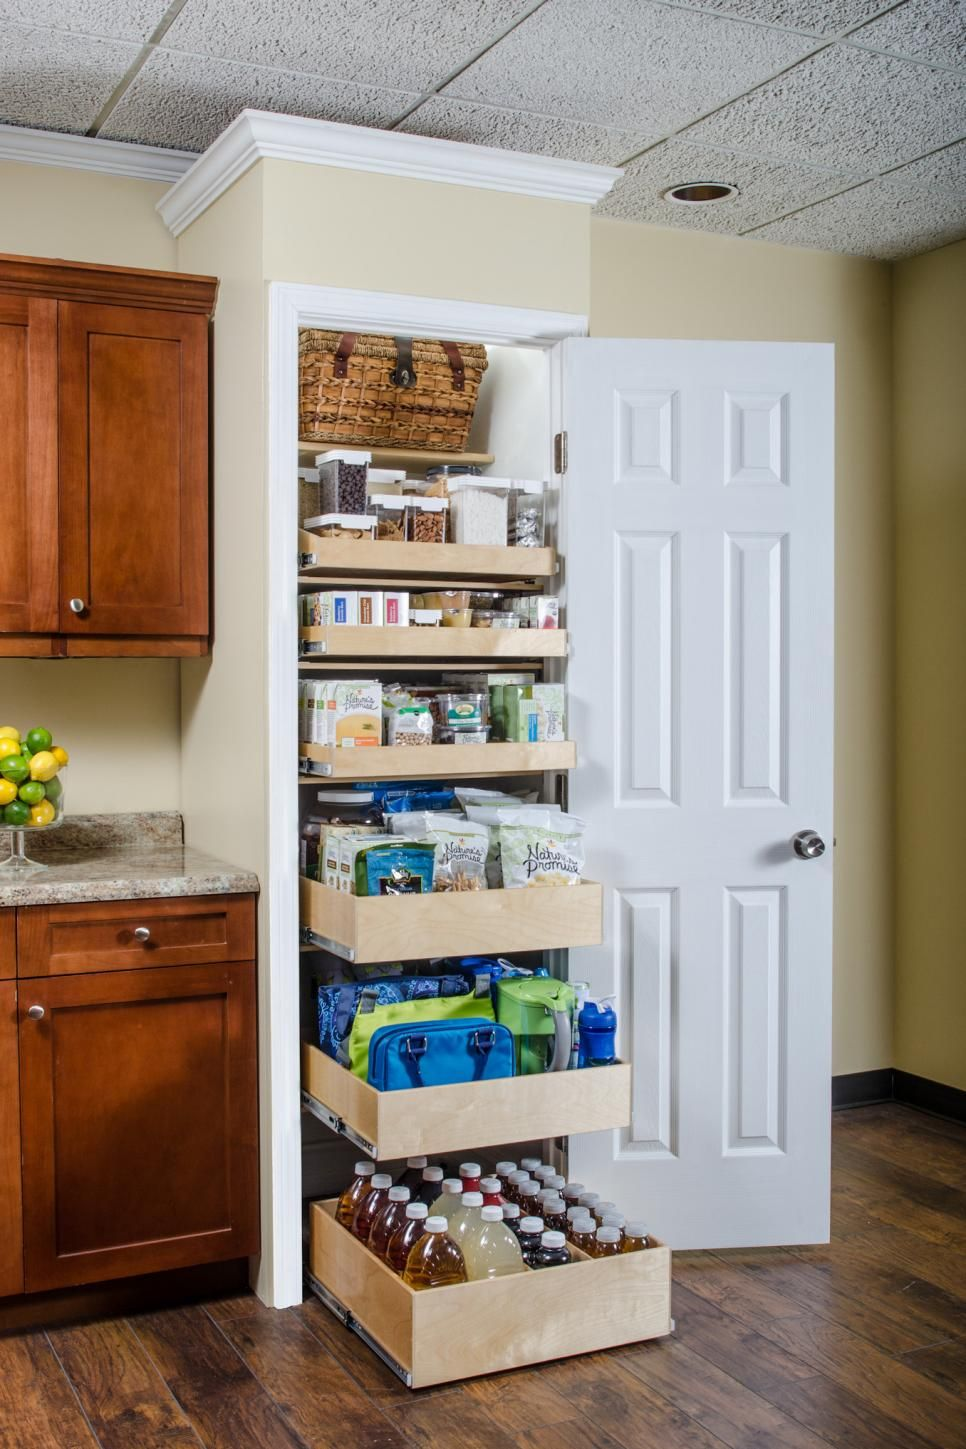 20 Best Pantry Organizers | Diy kitchen storage, Pantry ...